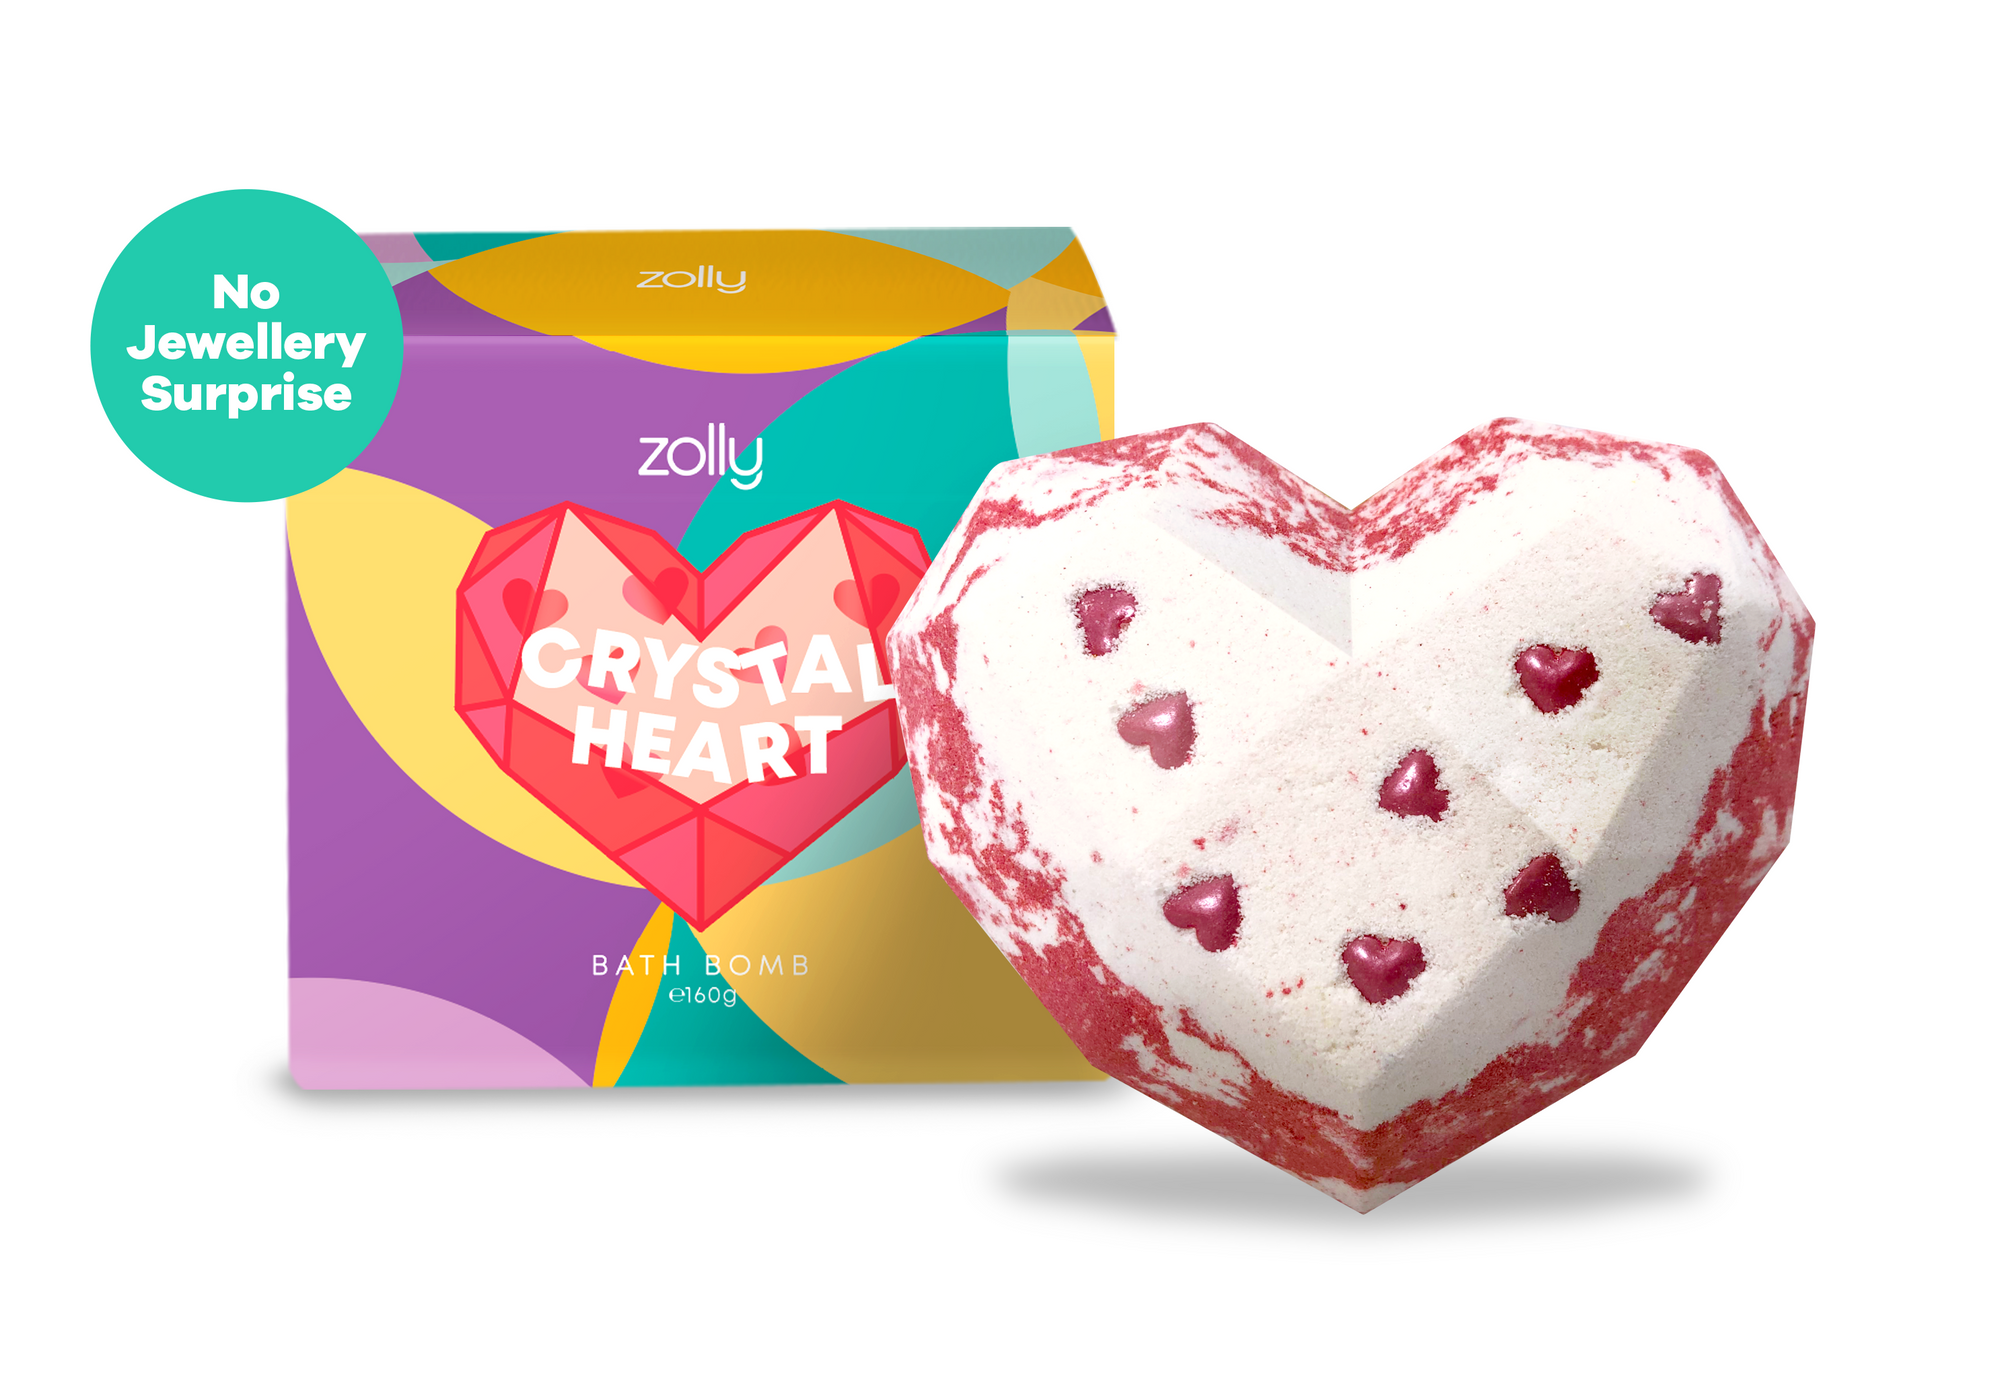 Crystal Heart Bath Bomb - 160g